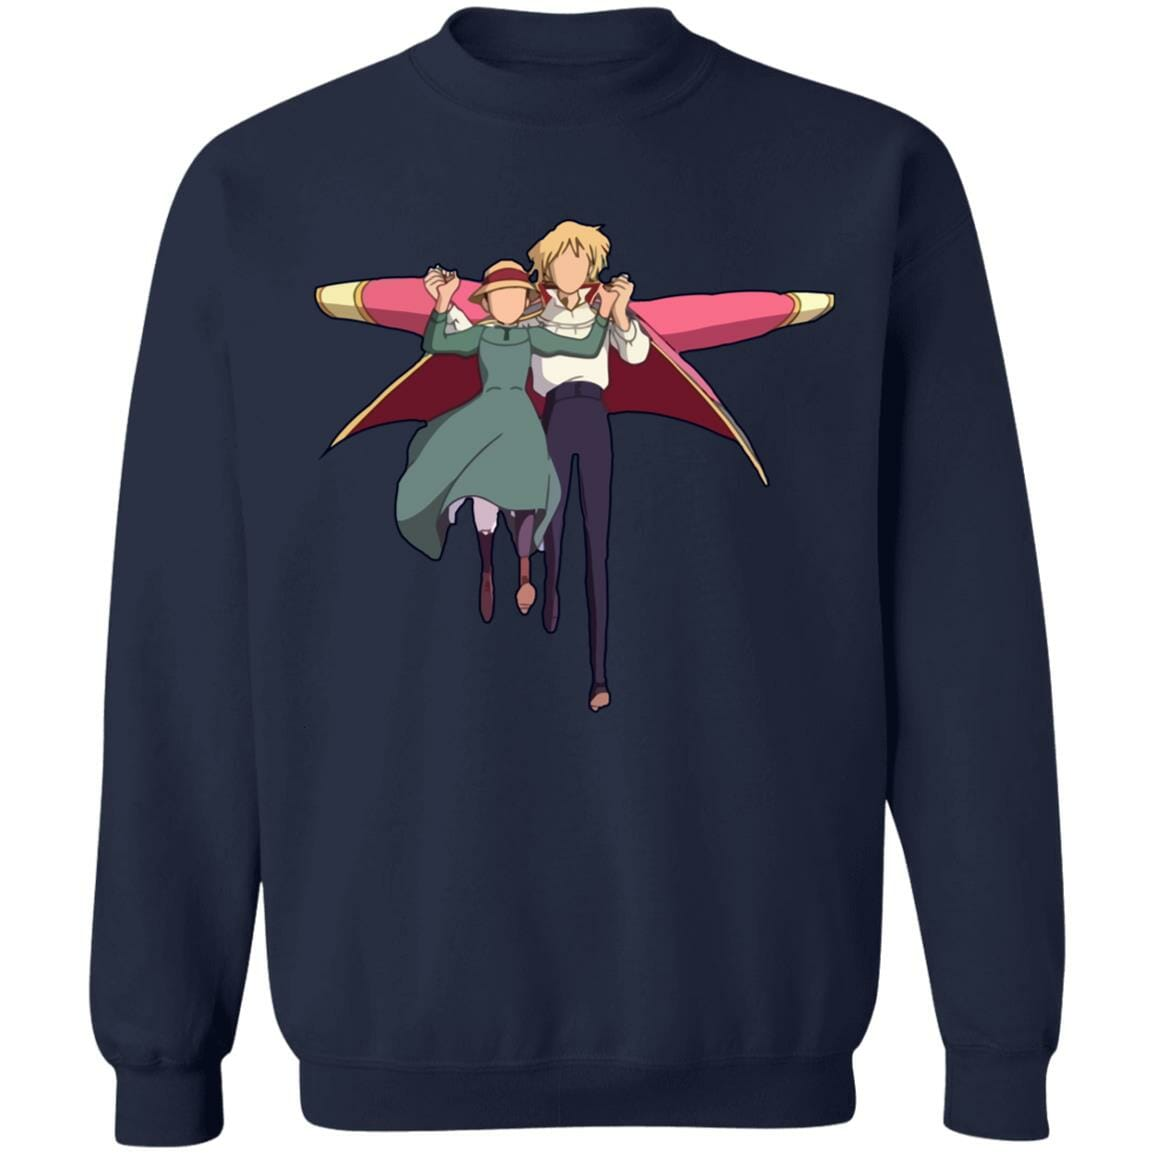 Howl's Moving Castle – Howl and Sophie Running Classic Sweatshirt